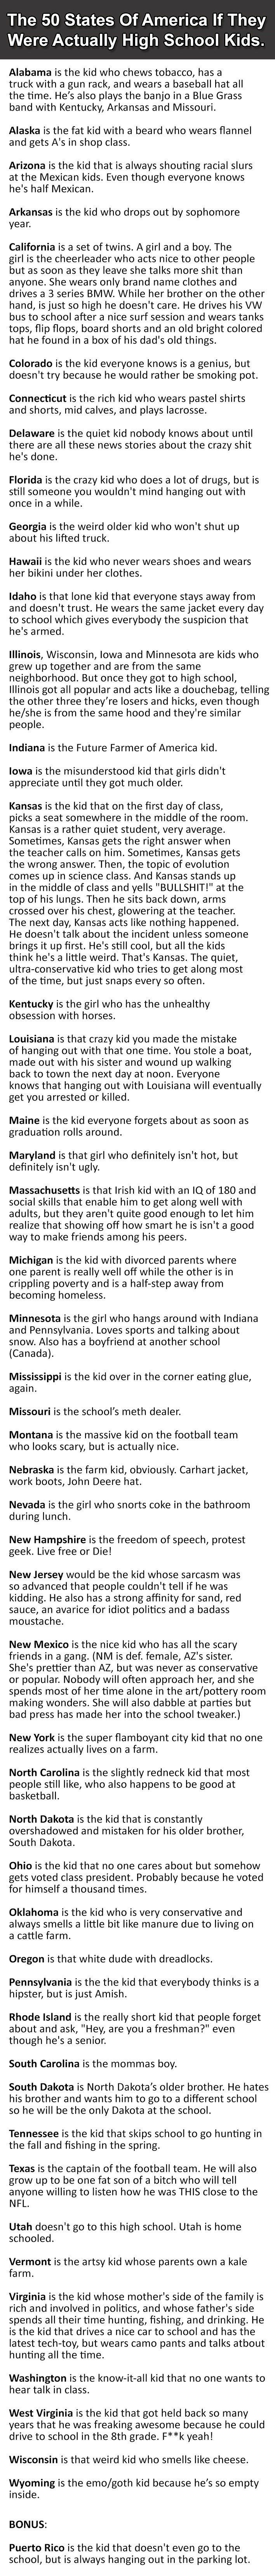 The 50 States Of America If They Were Actually High School Kids.